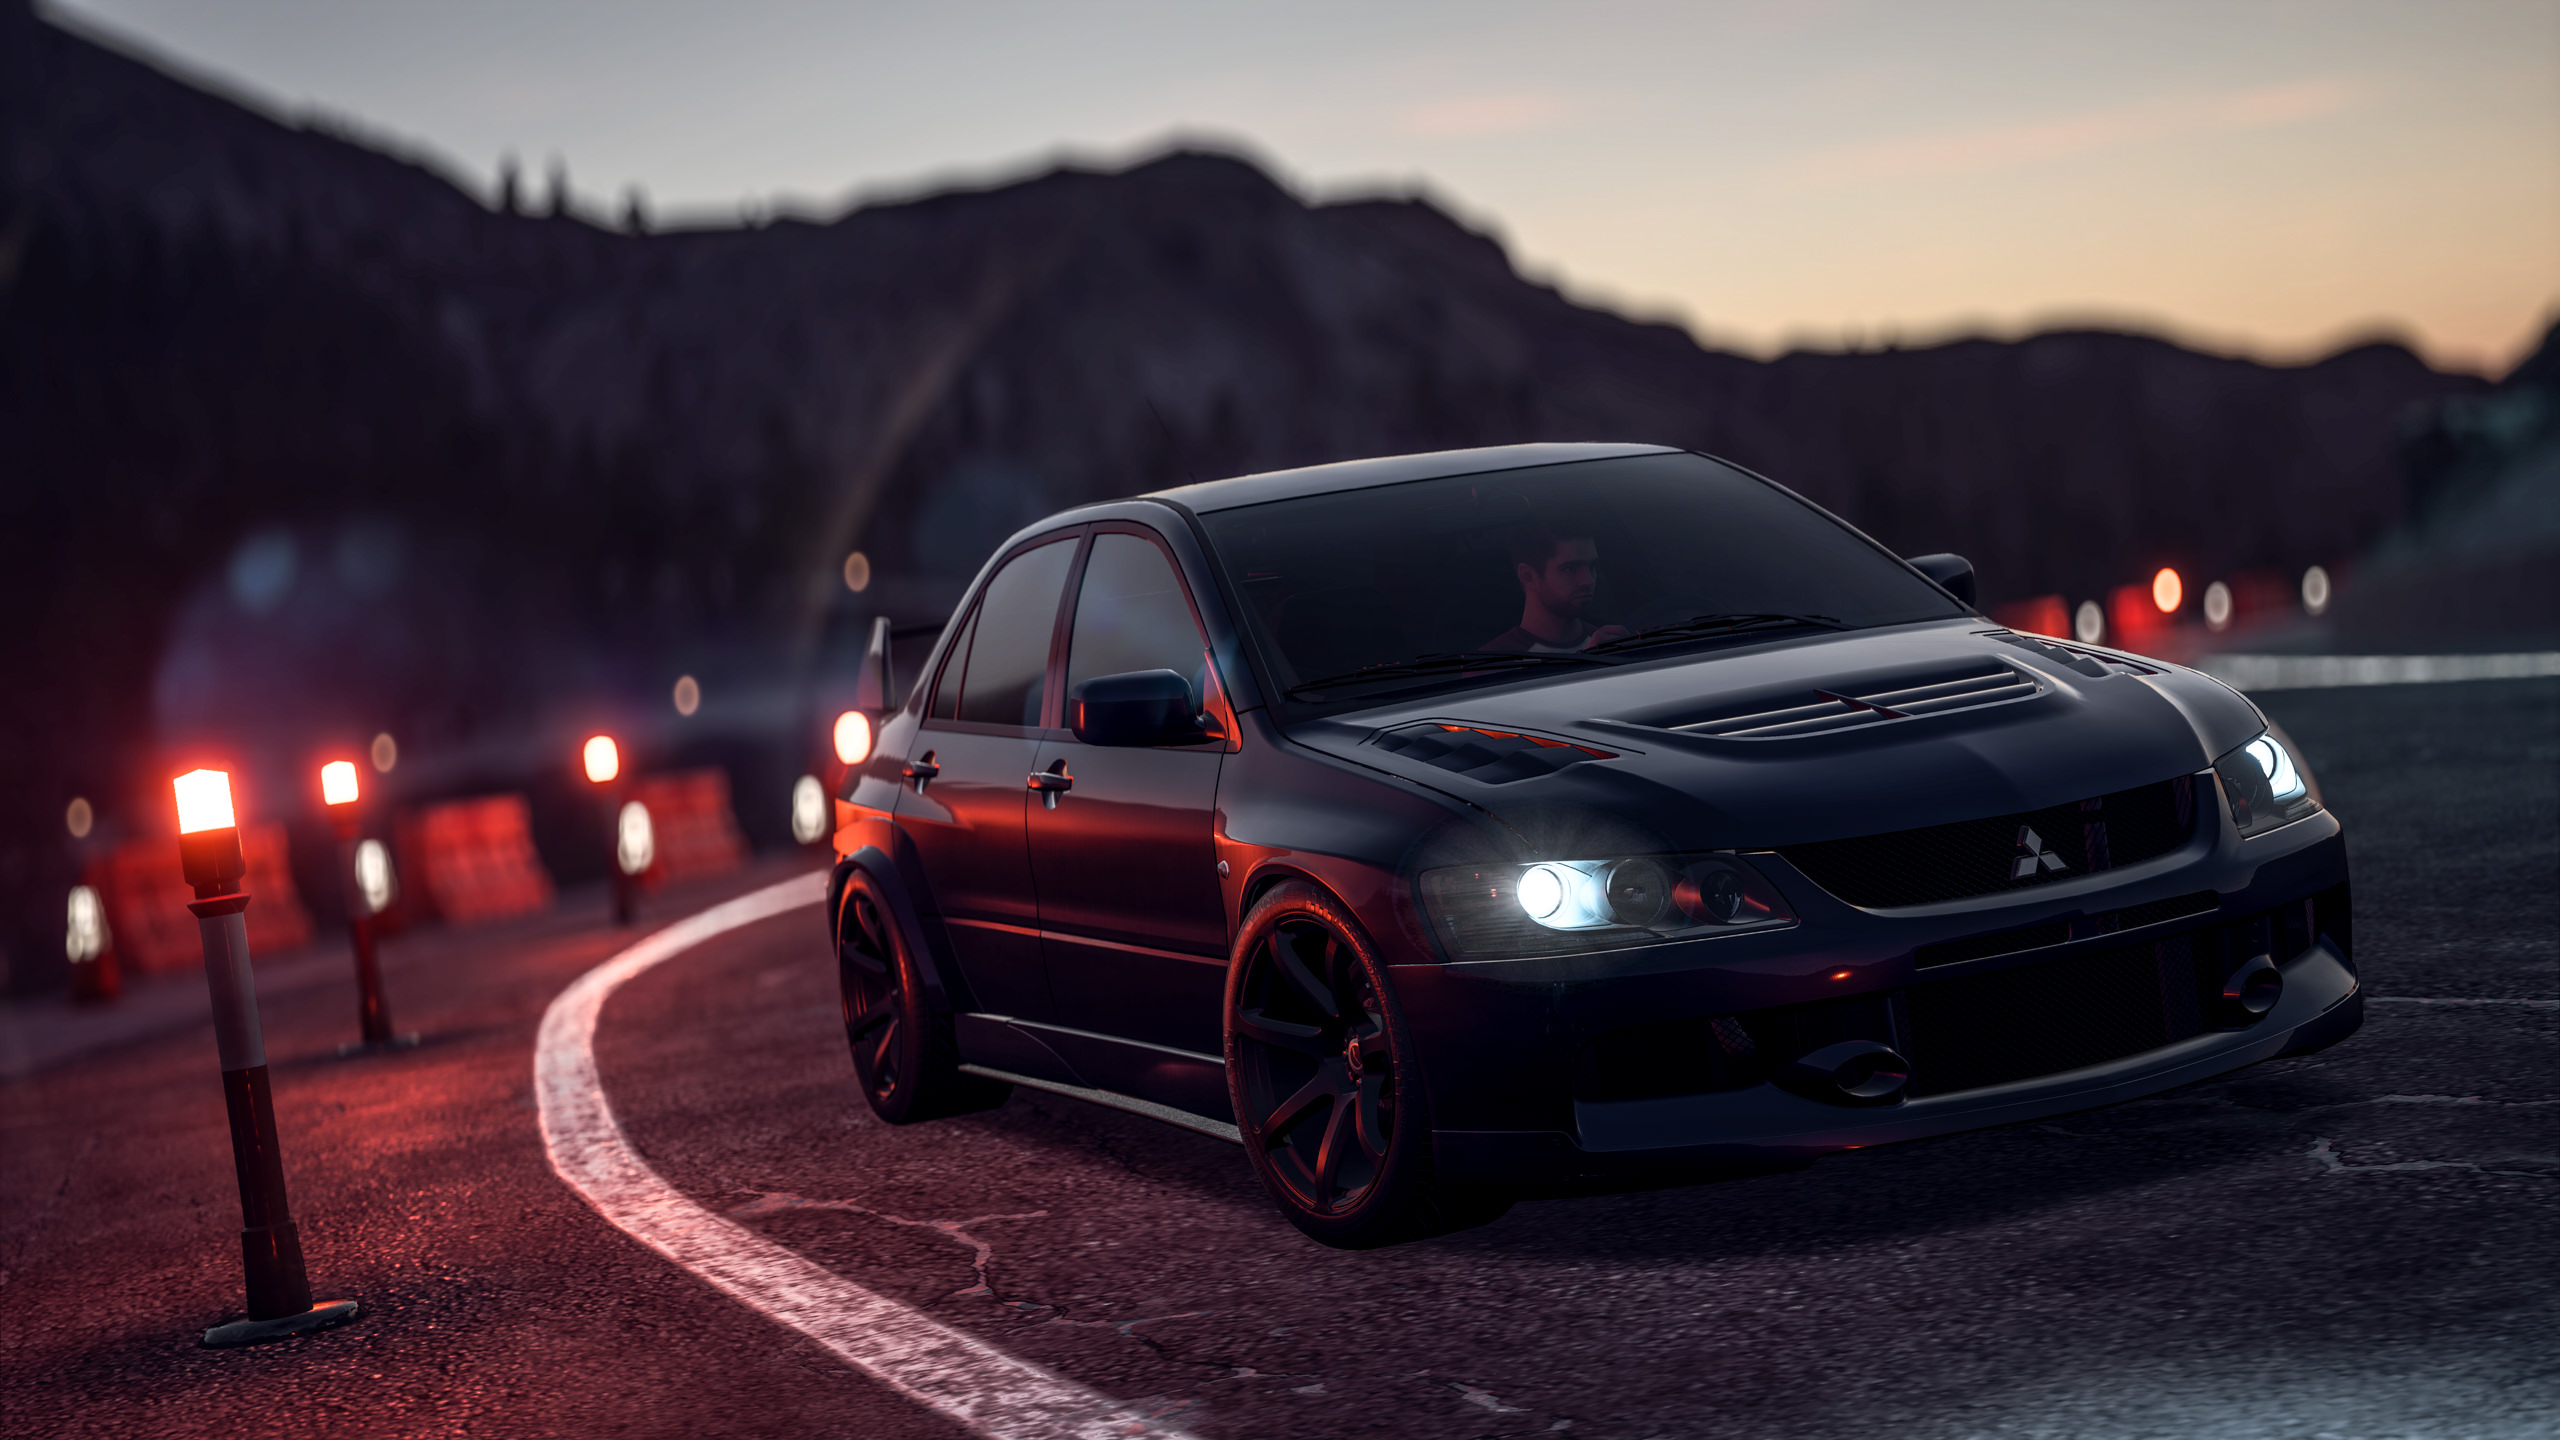 1920x1080 Need For Speed Payback Under The Hood Laptop Full Hd